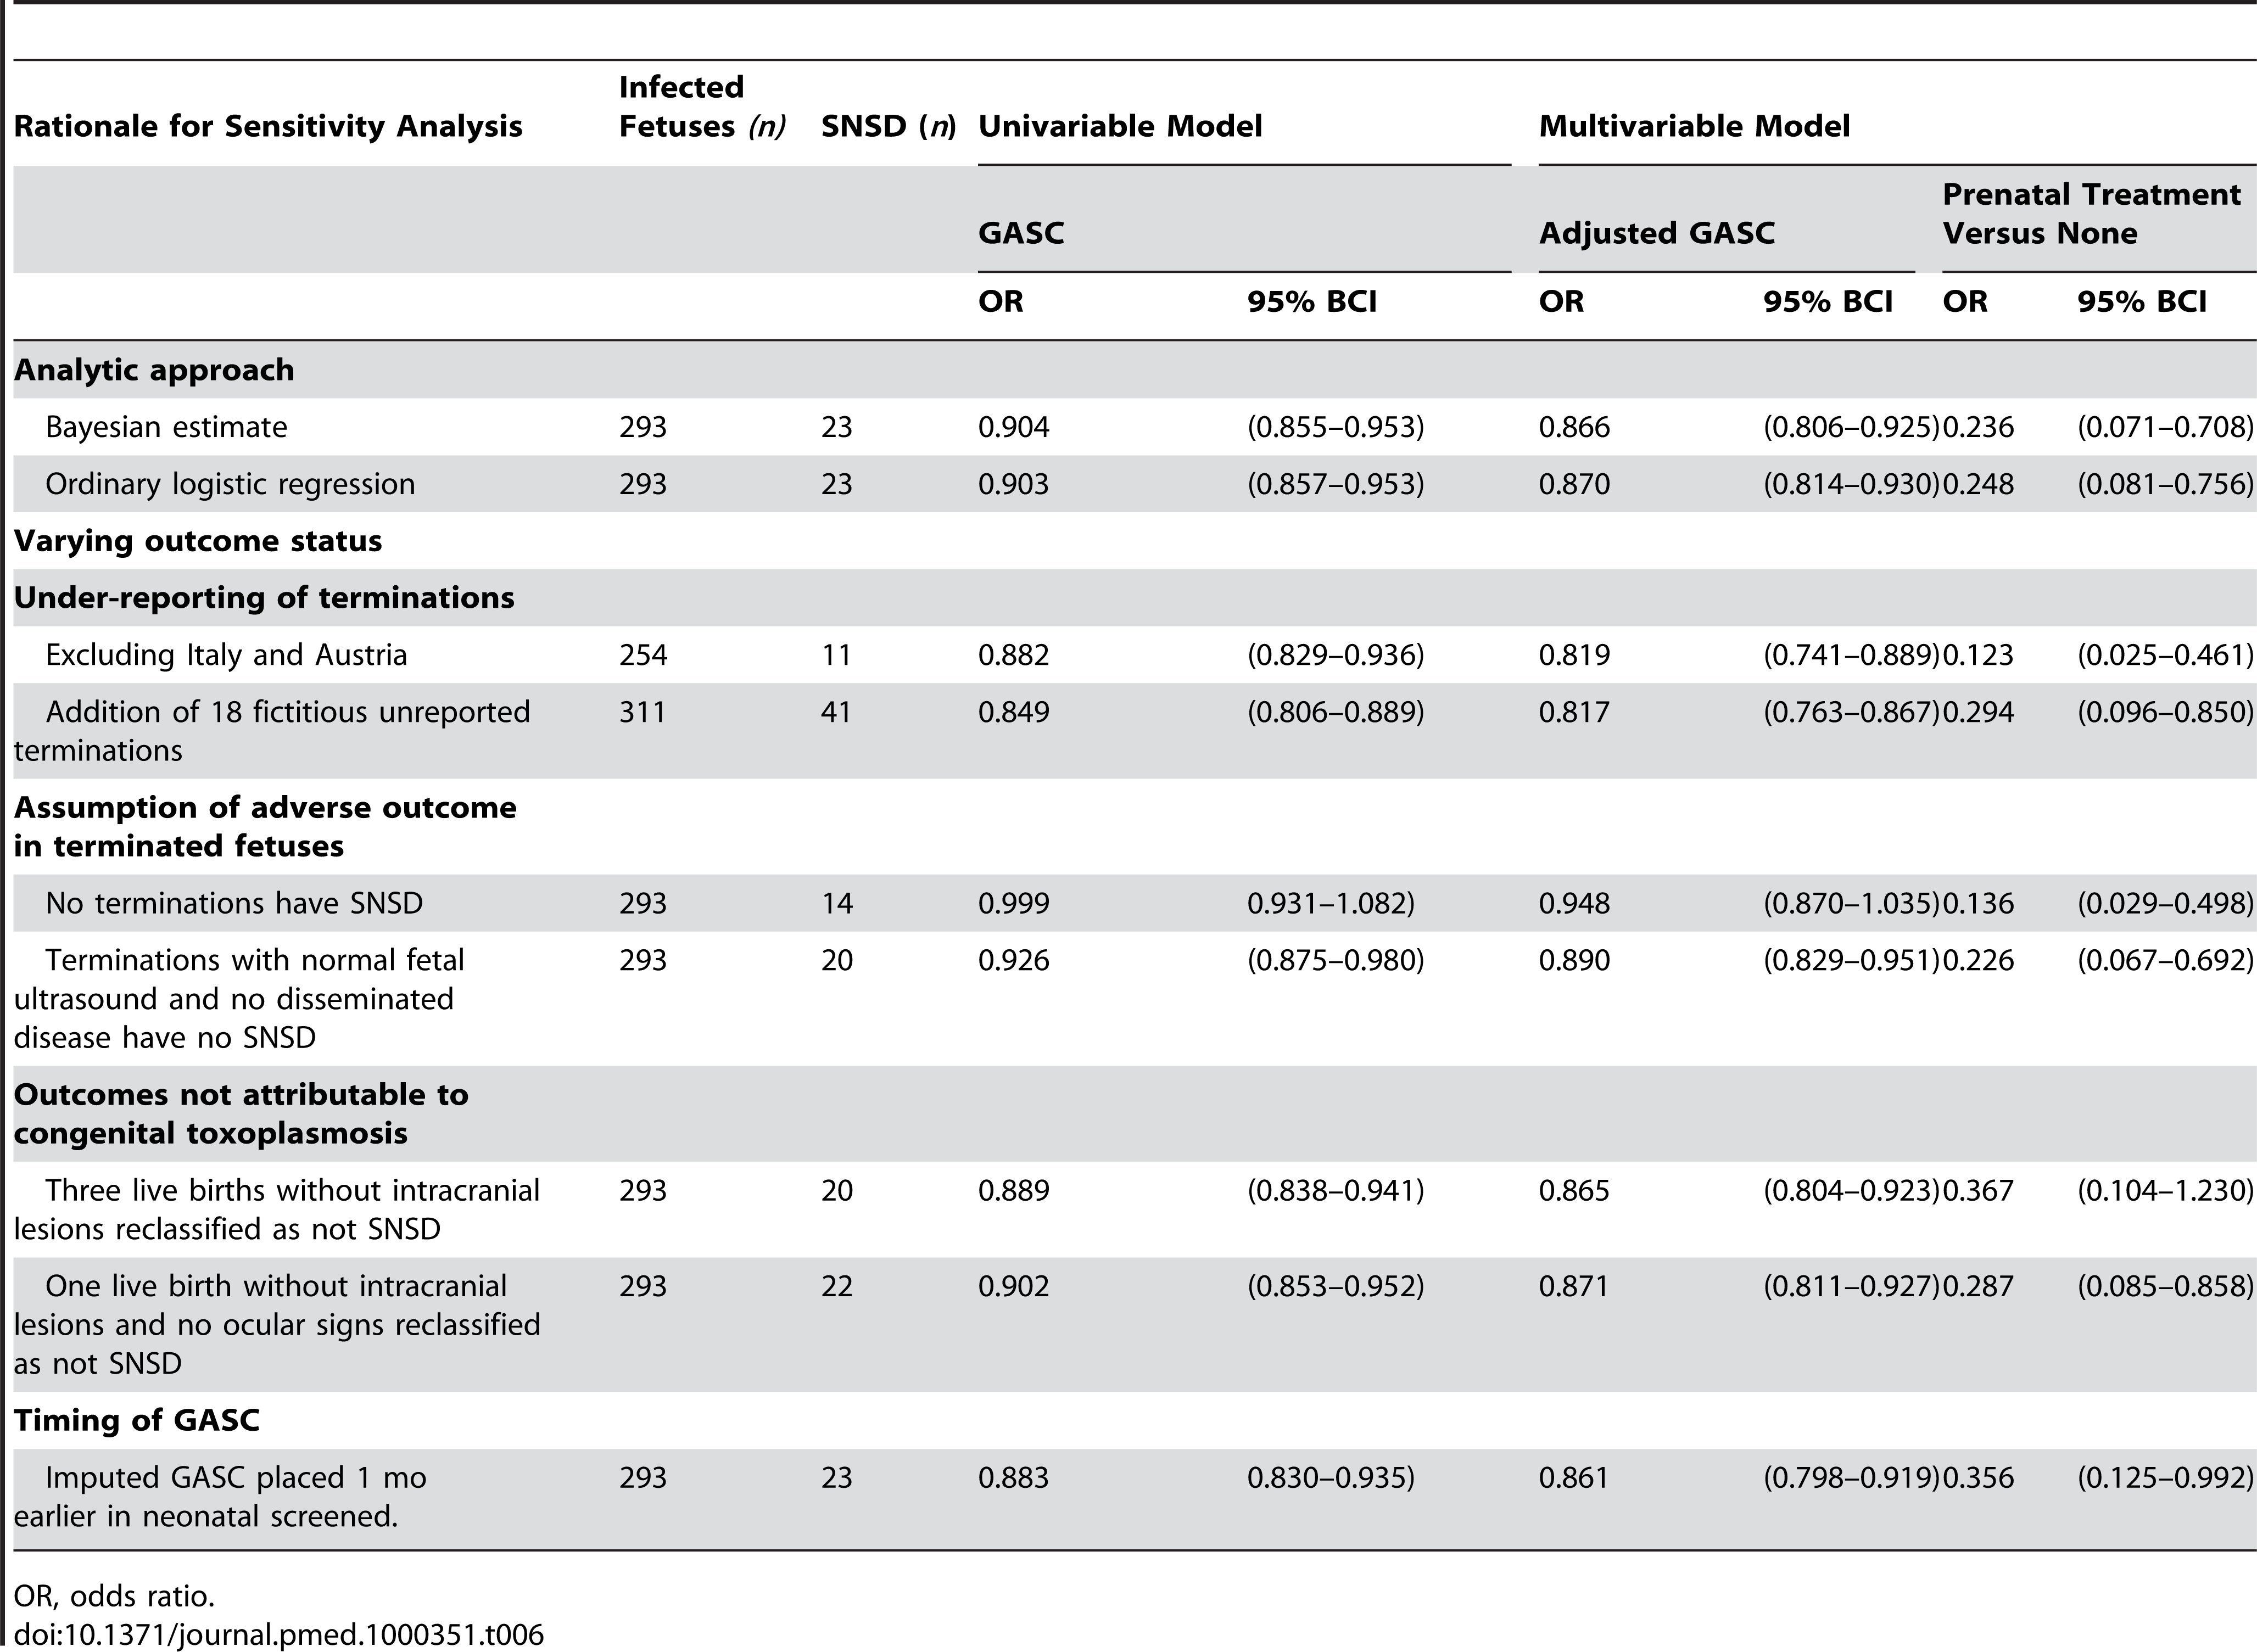 Sensitivity analyses (odds ratios for SNSD and 95% BCIs).